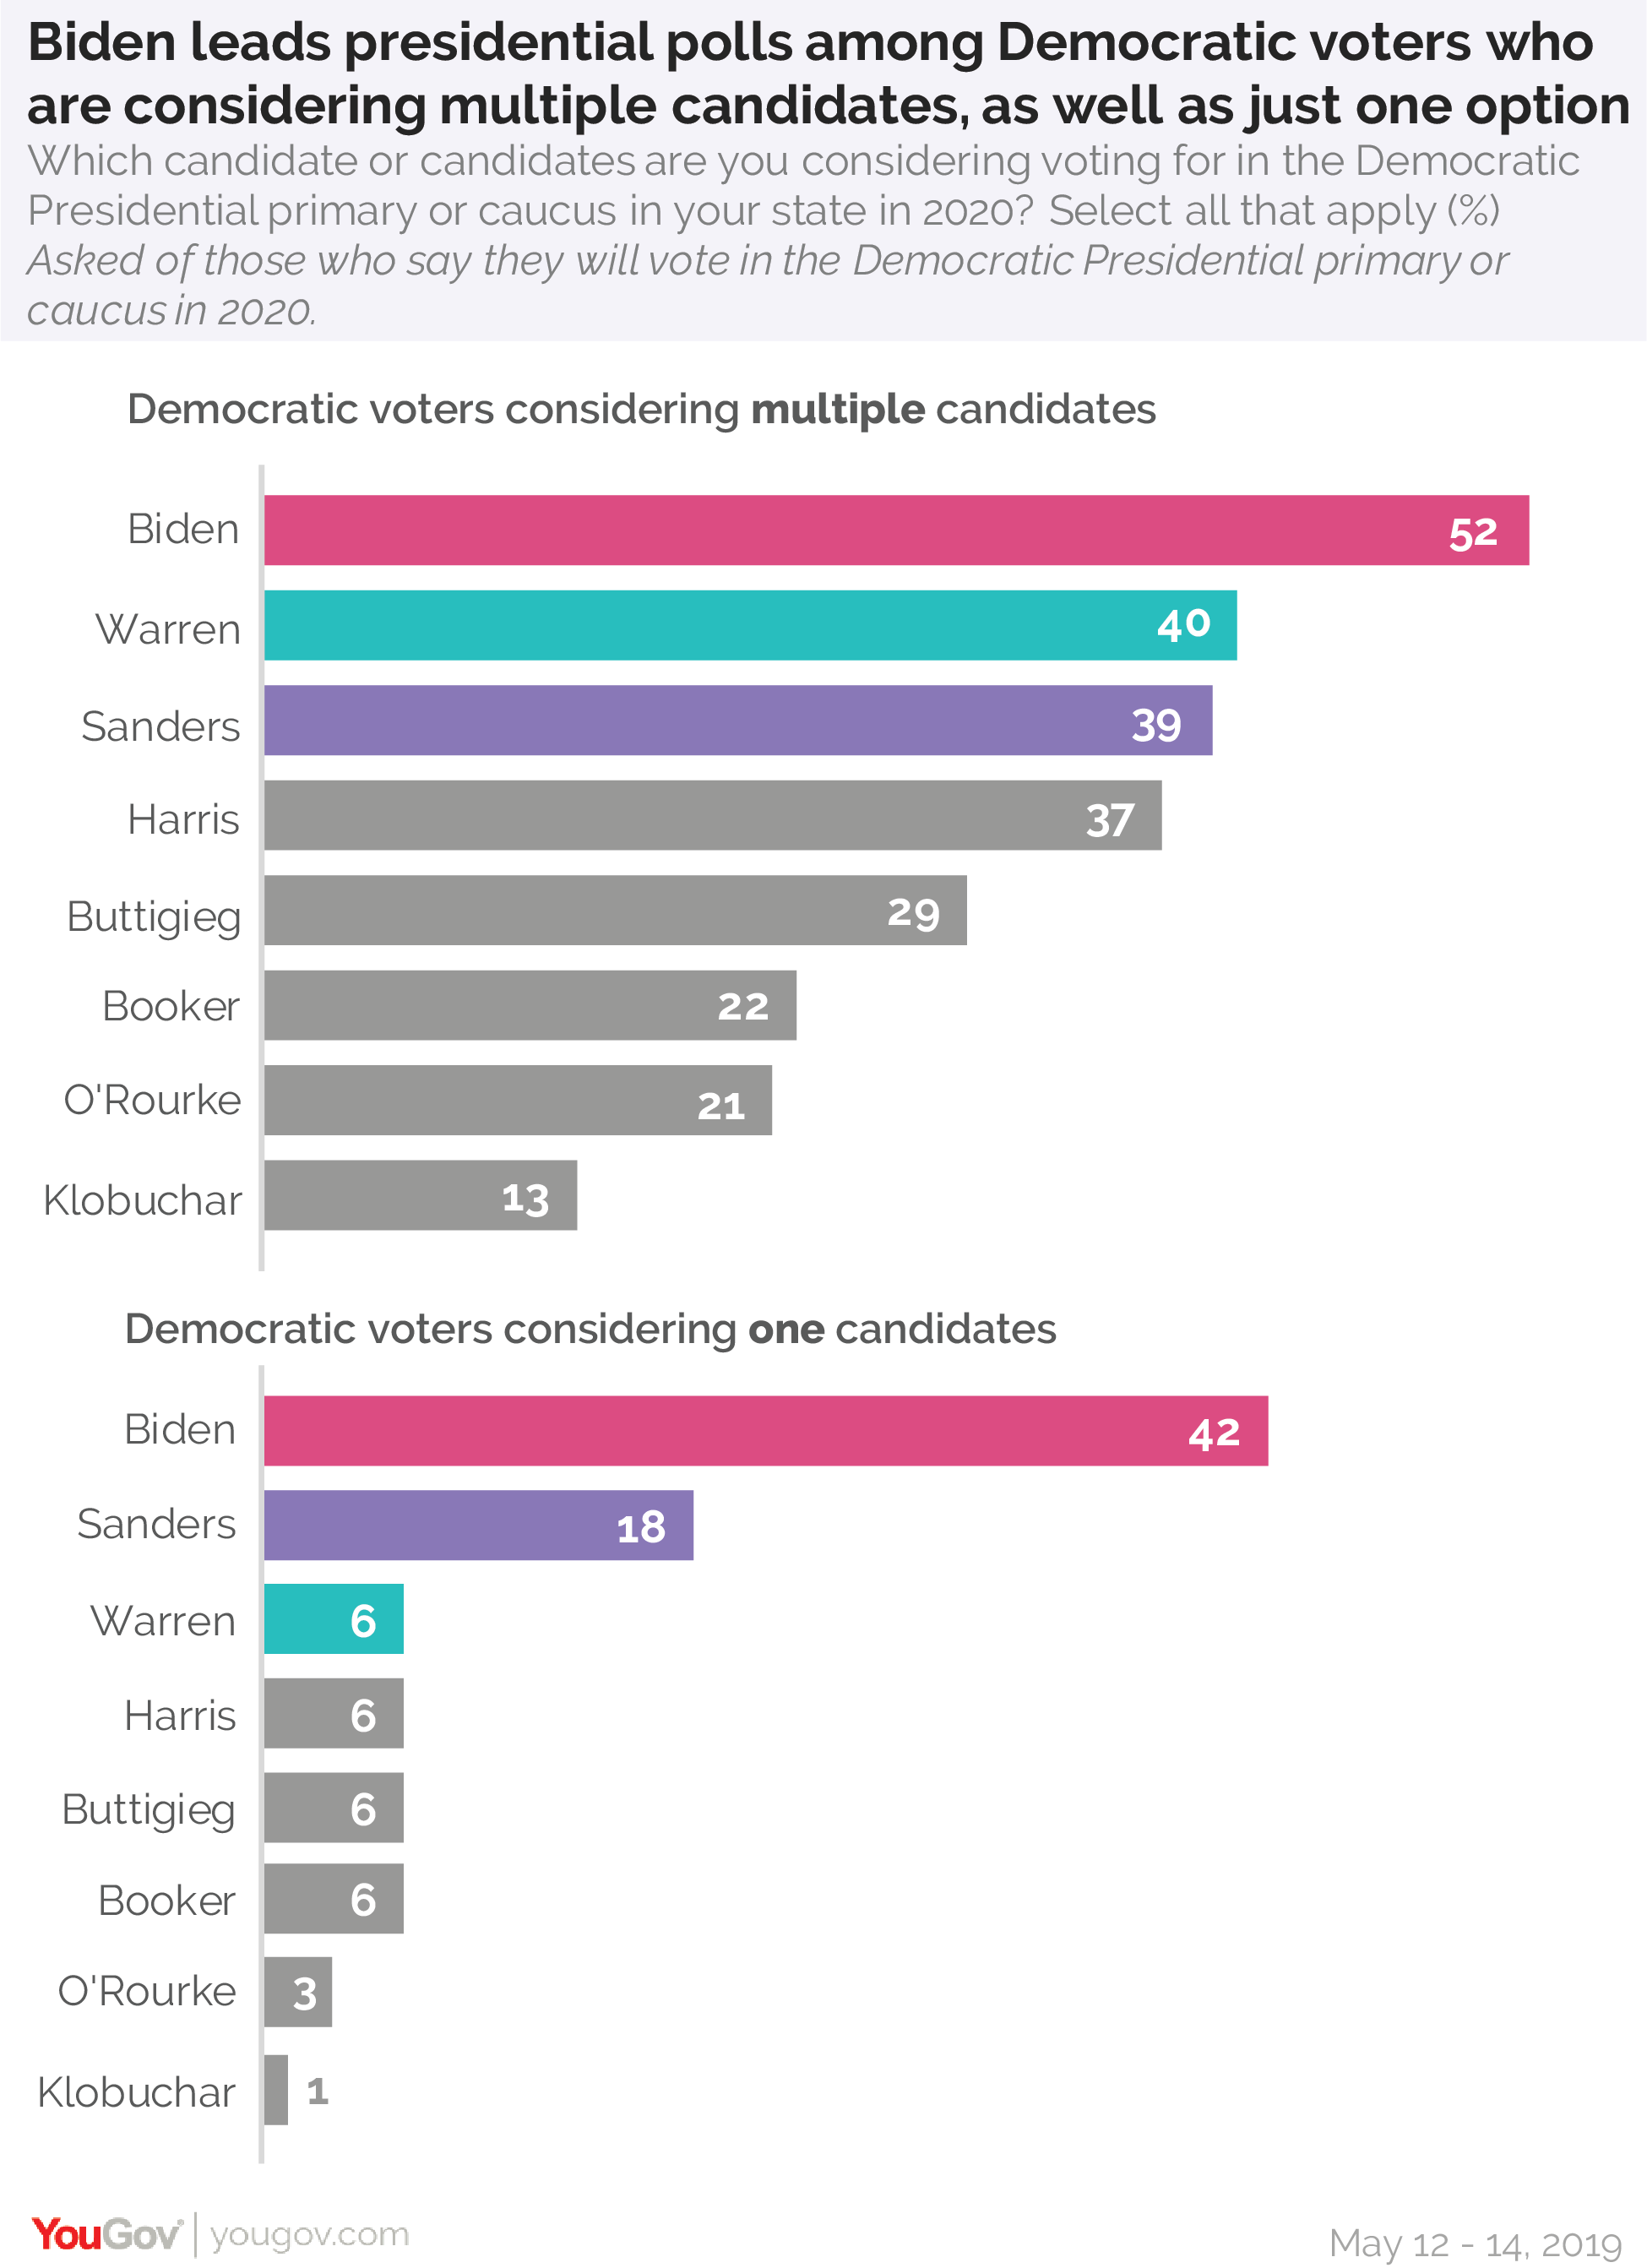 Former Vice President Joe Biden leads presidential polls among Democratic voters who are considering multiple candidates or just one